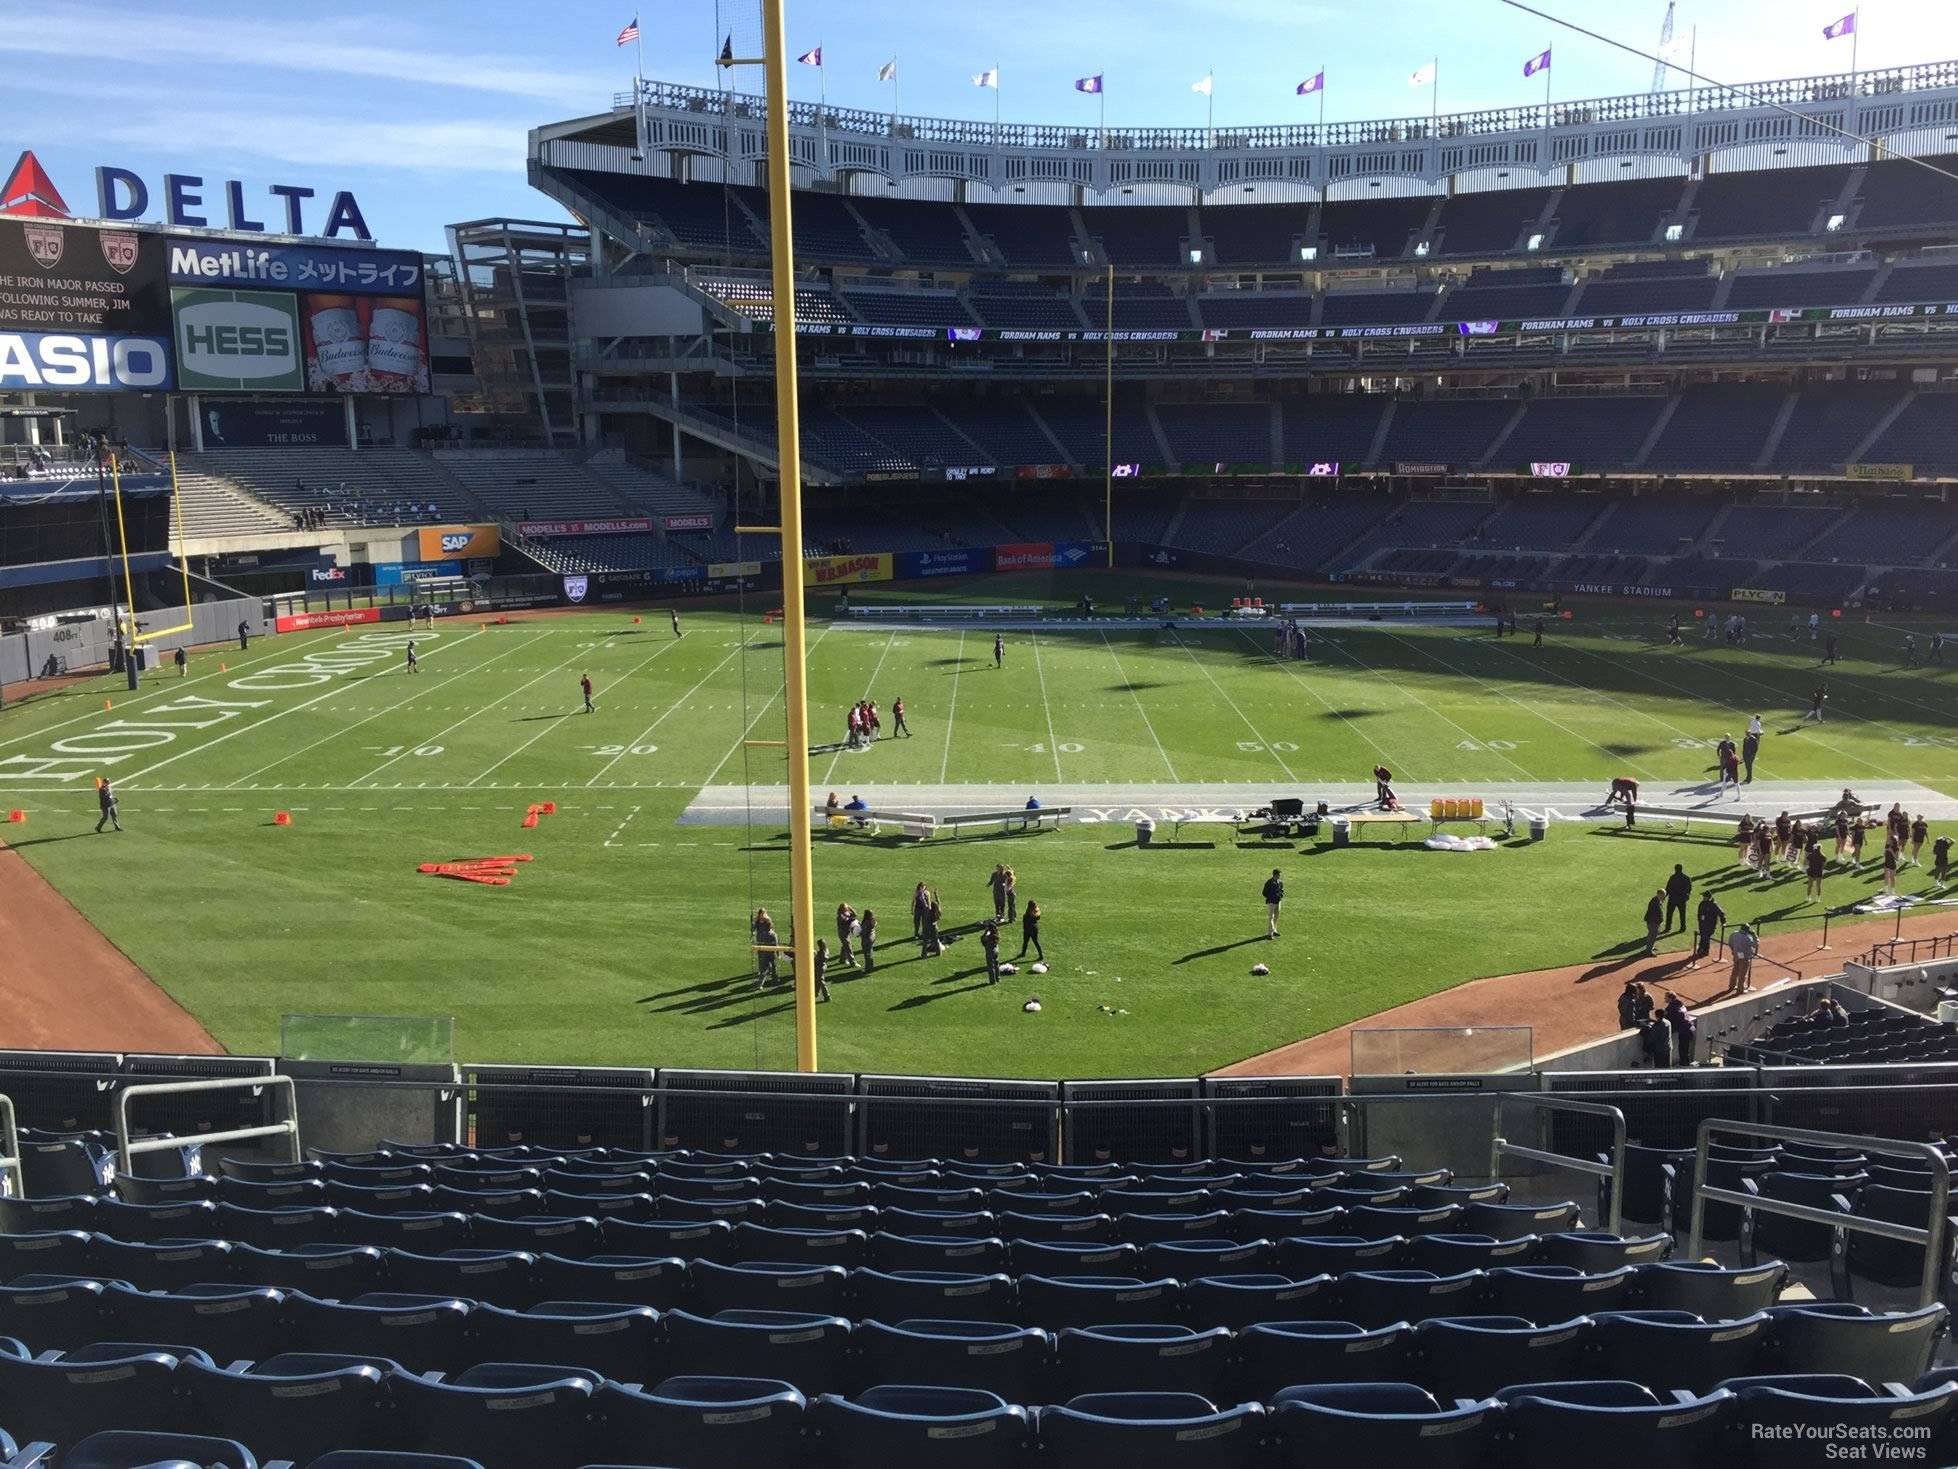 Section 232A seat view